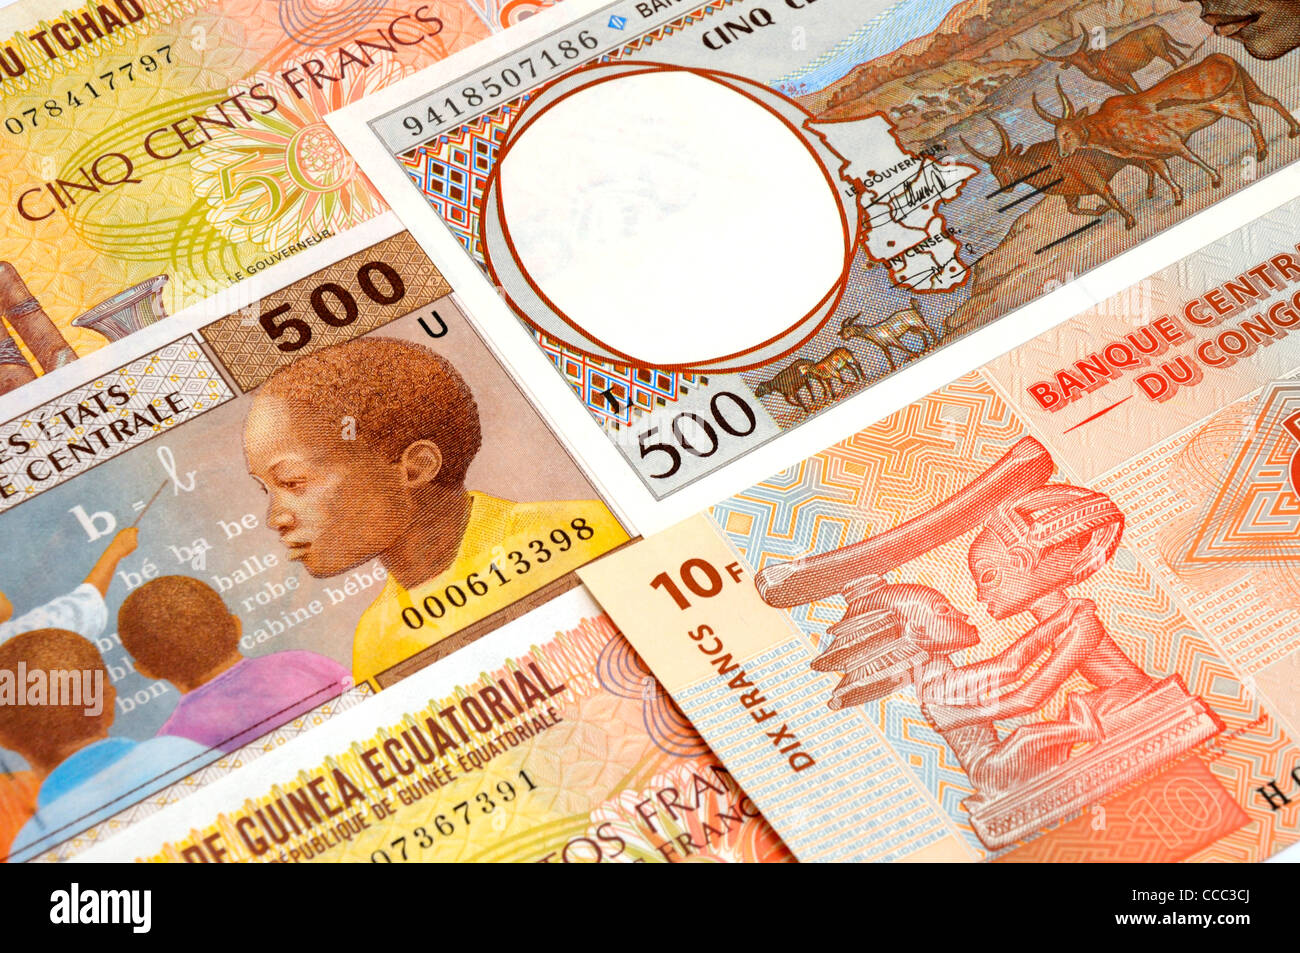 Central African Banknotes. - Stock Image